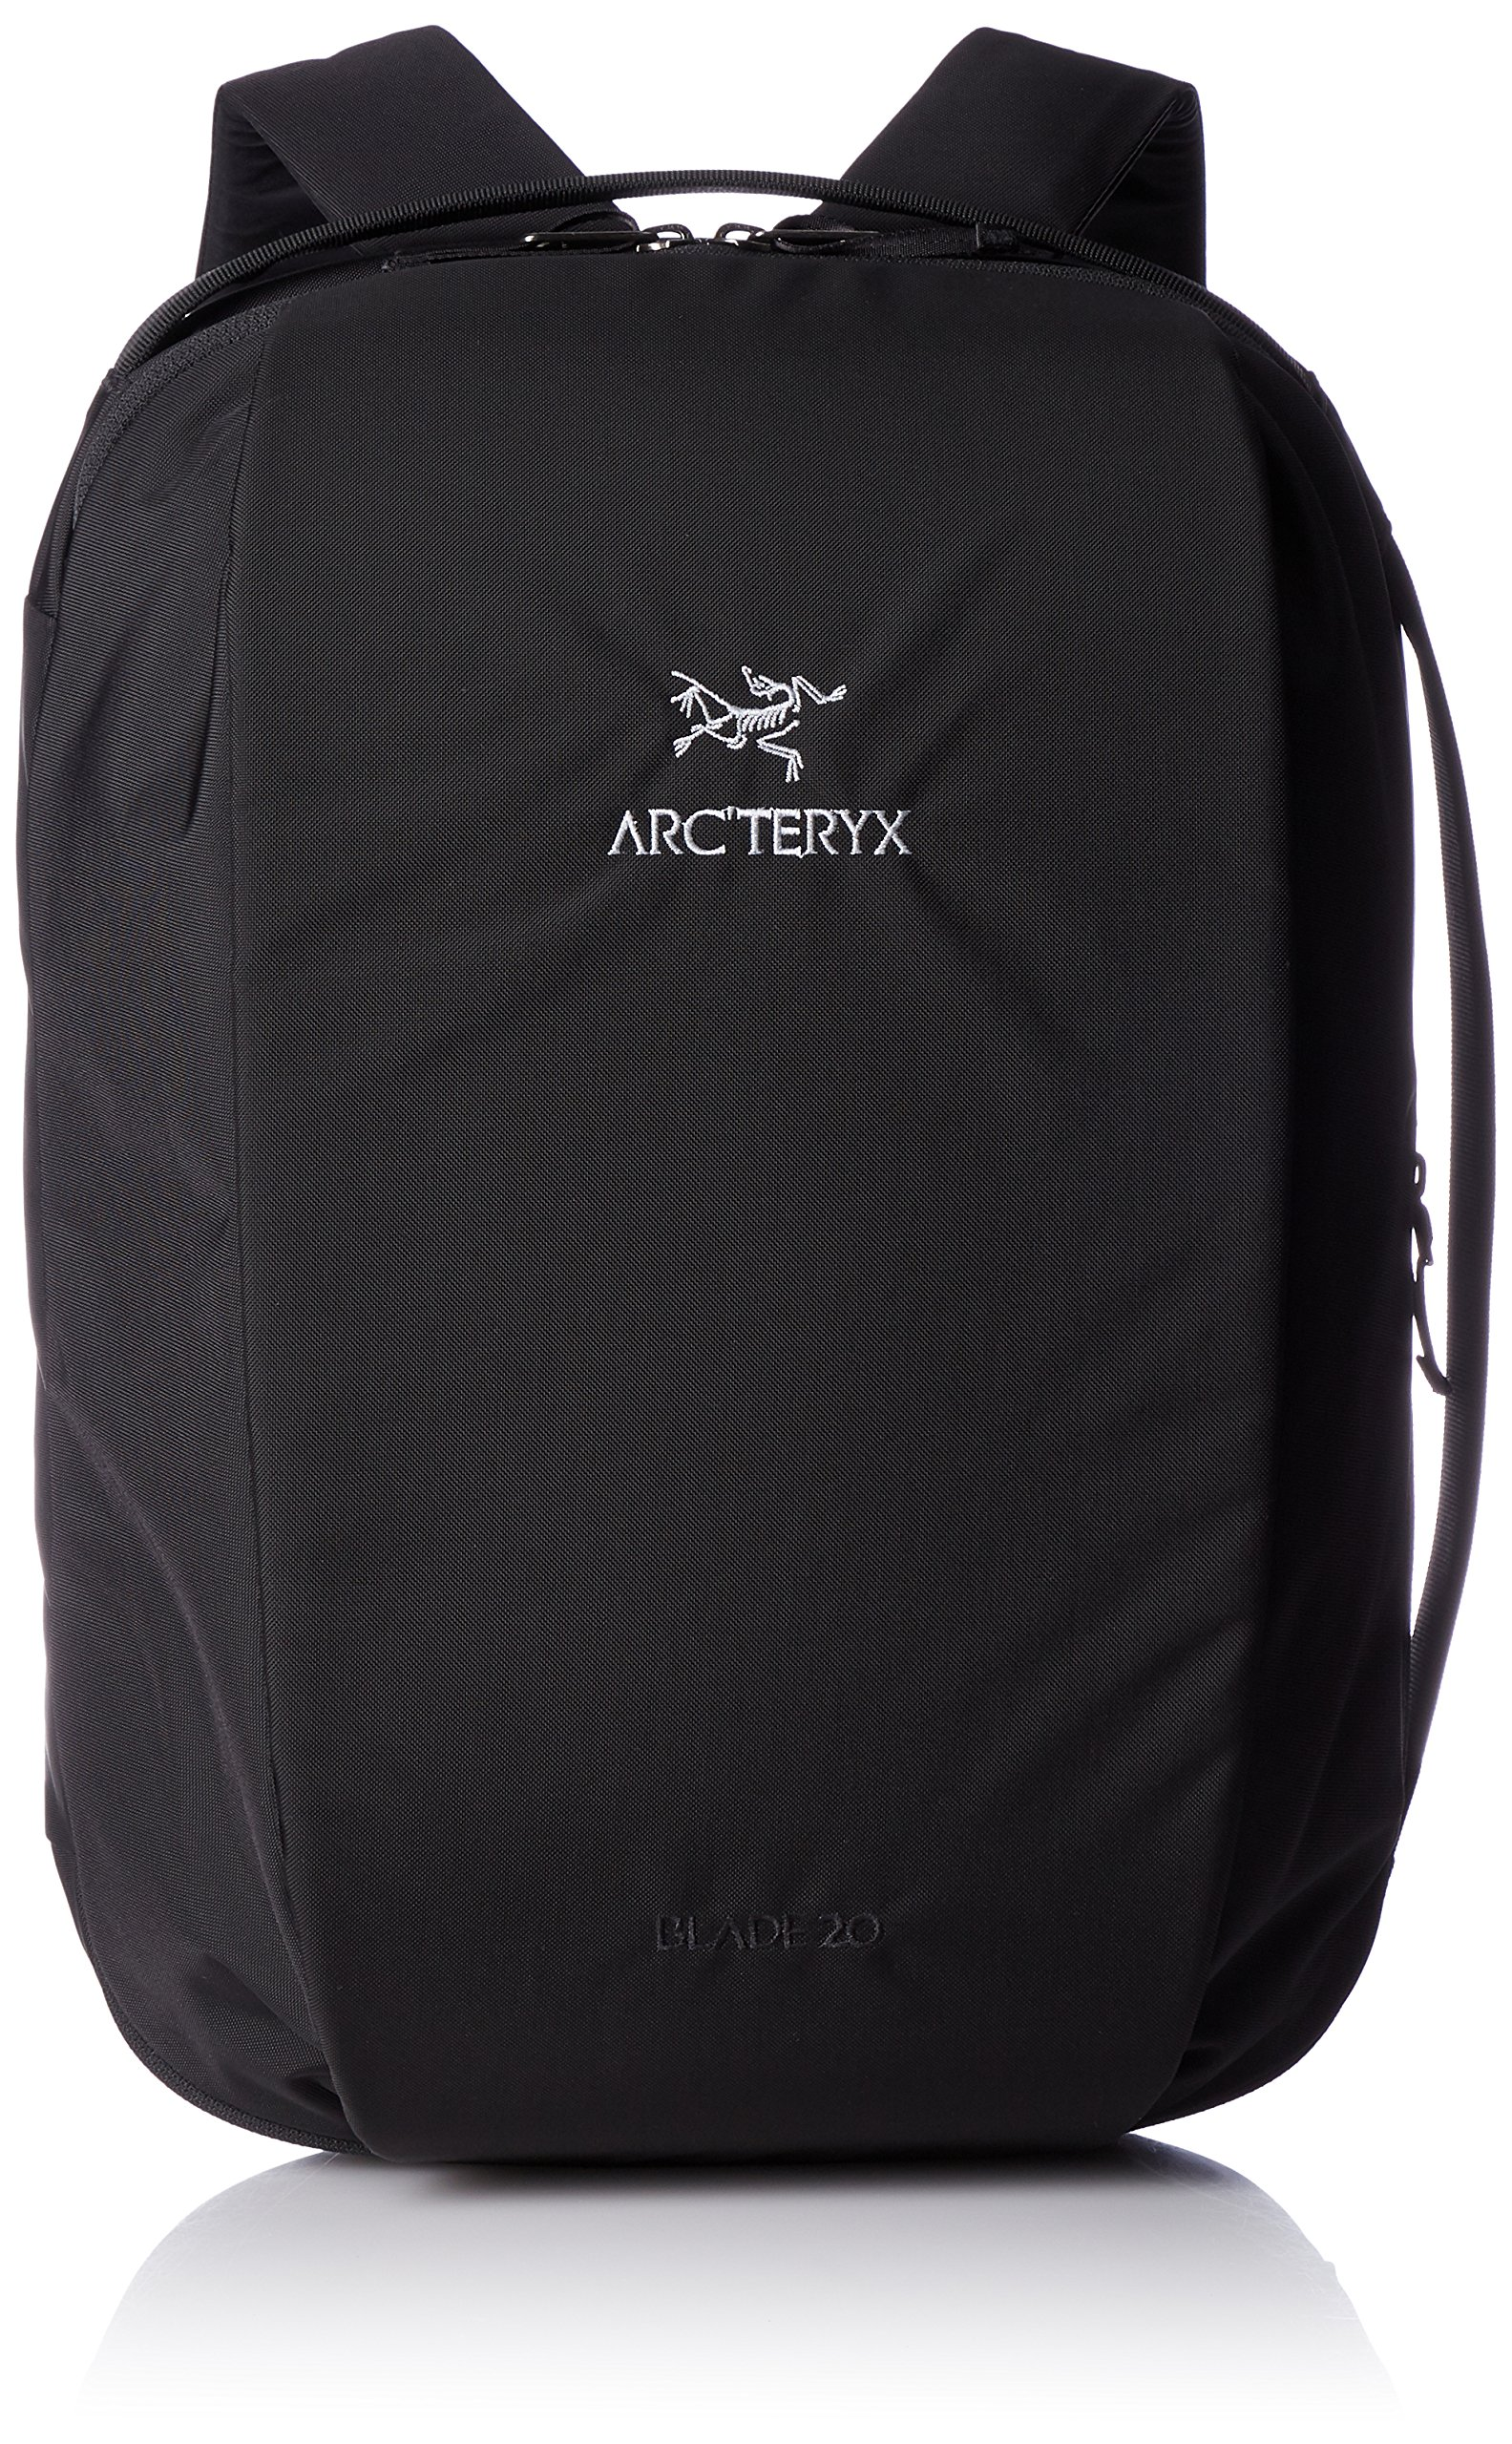 Arcteryx Blade 20 Backpack Black 20L by Arc'teryx